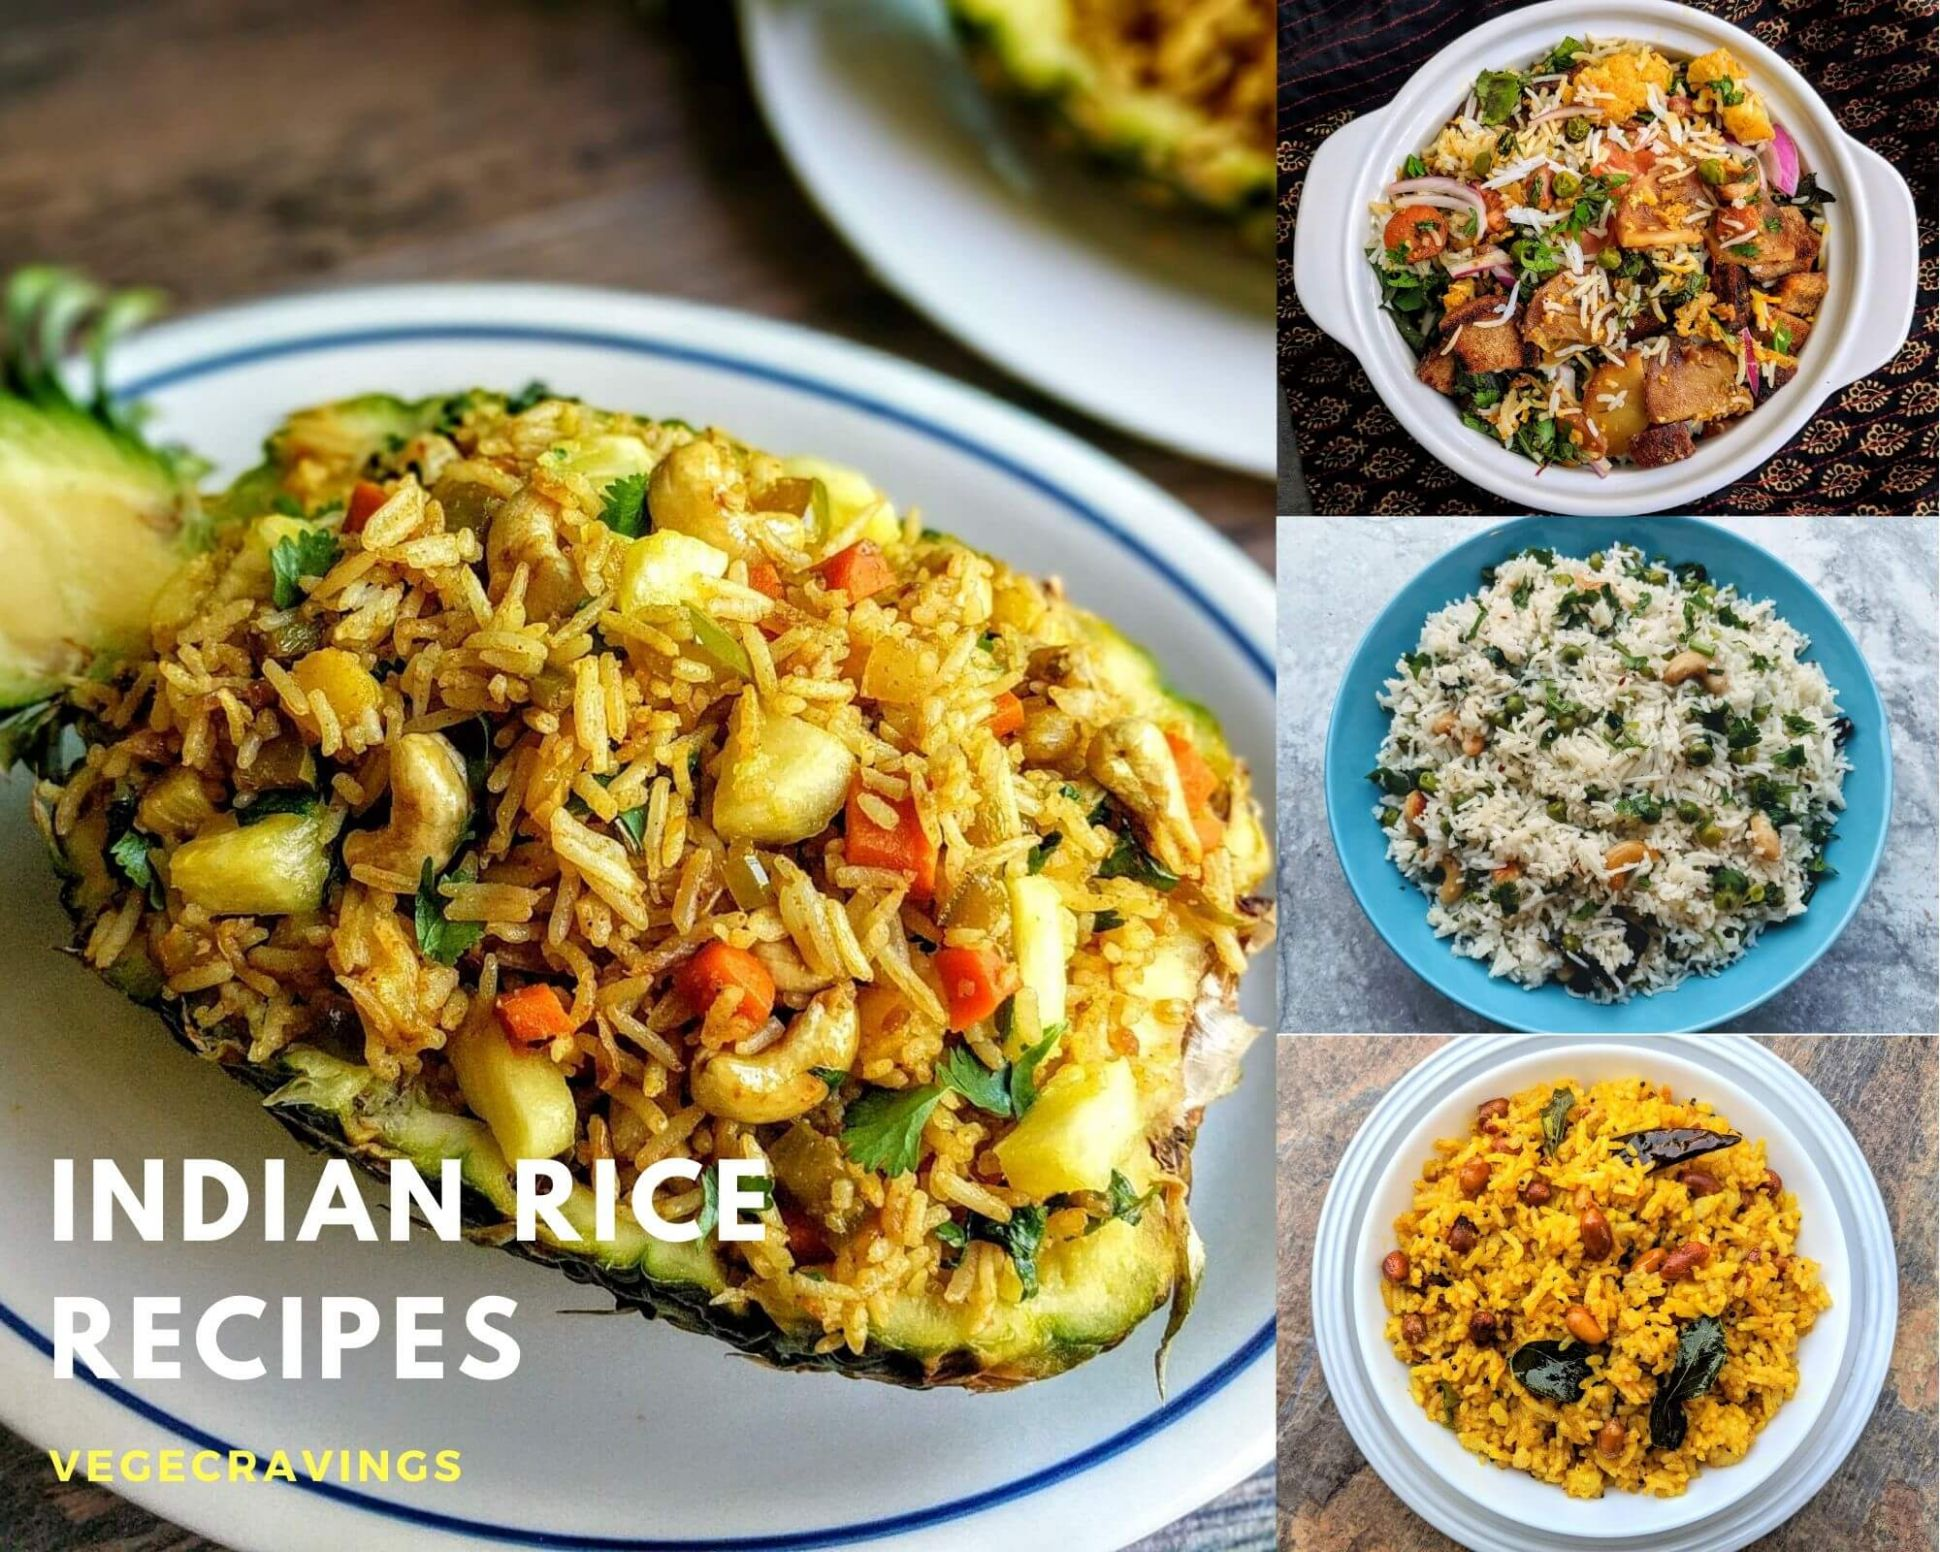 Rice Recipes | List of 8 Veg Rice Recipes | VegeCravings - Breakfast Recipes Rice Items